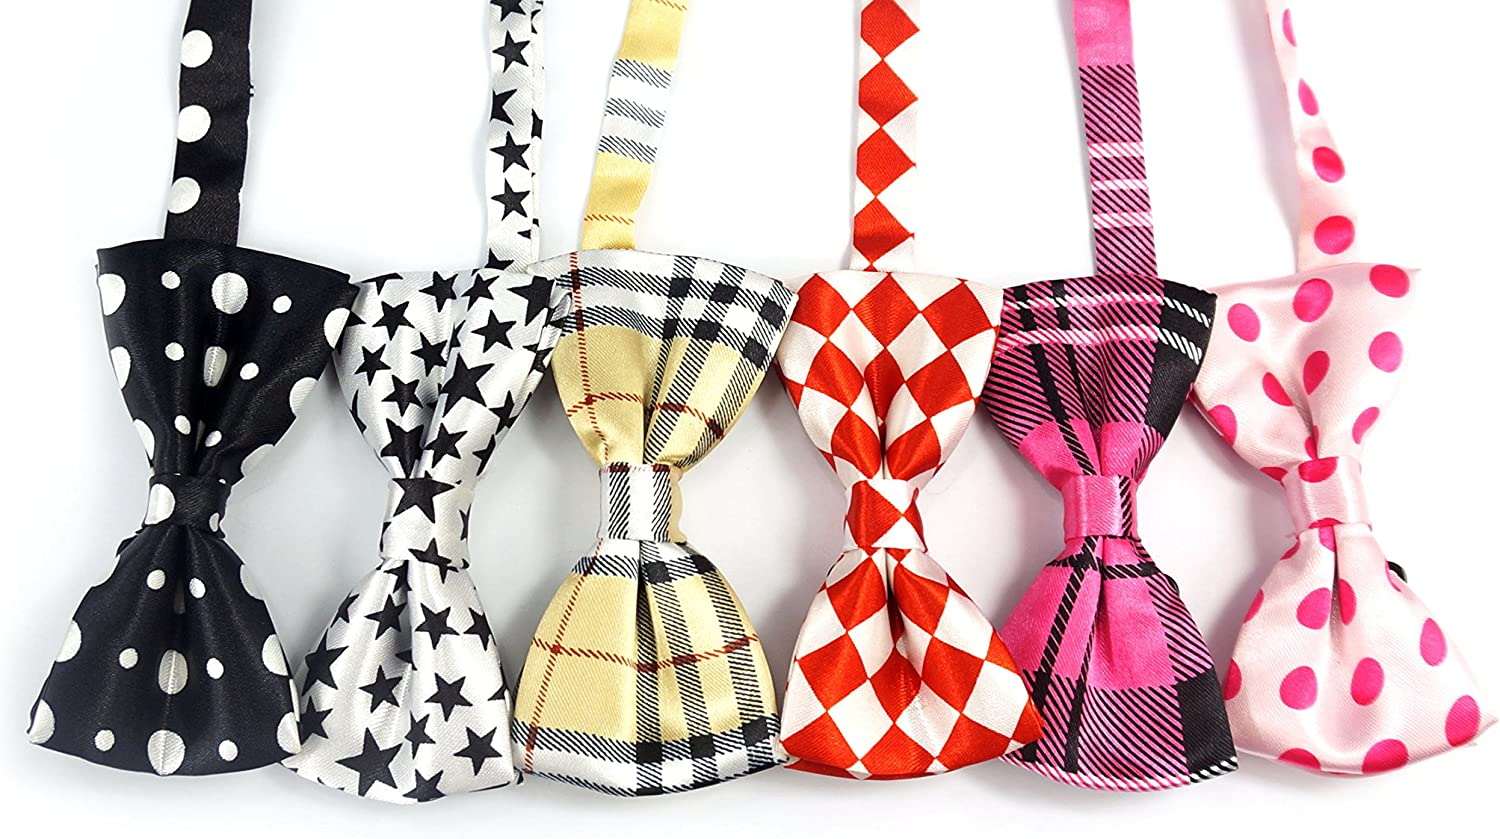 LilMents 12 Pack Boys Mixed Designs Adjustable Pre Tied Bow Necktie Tie Set